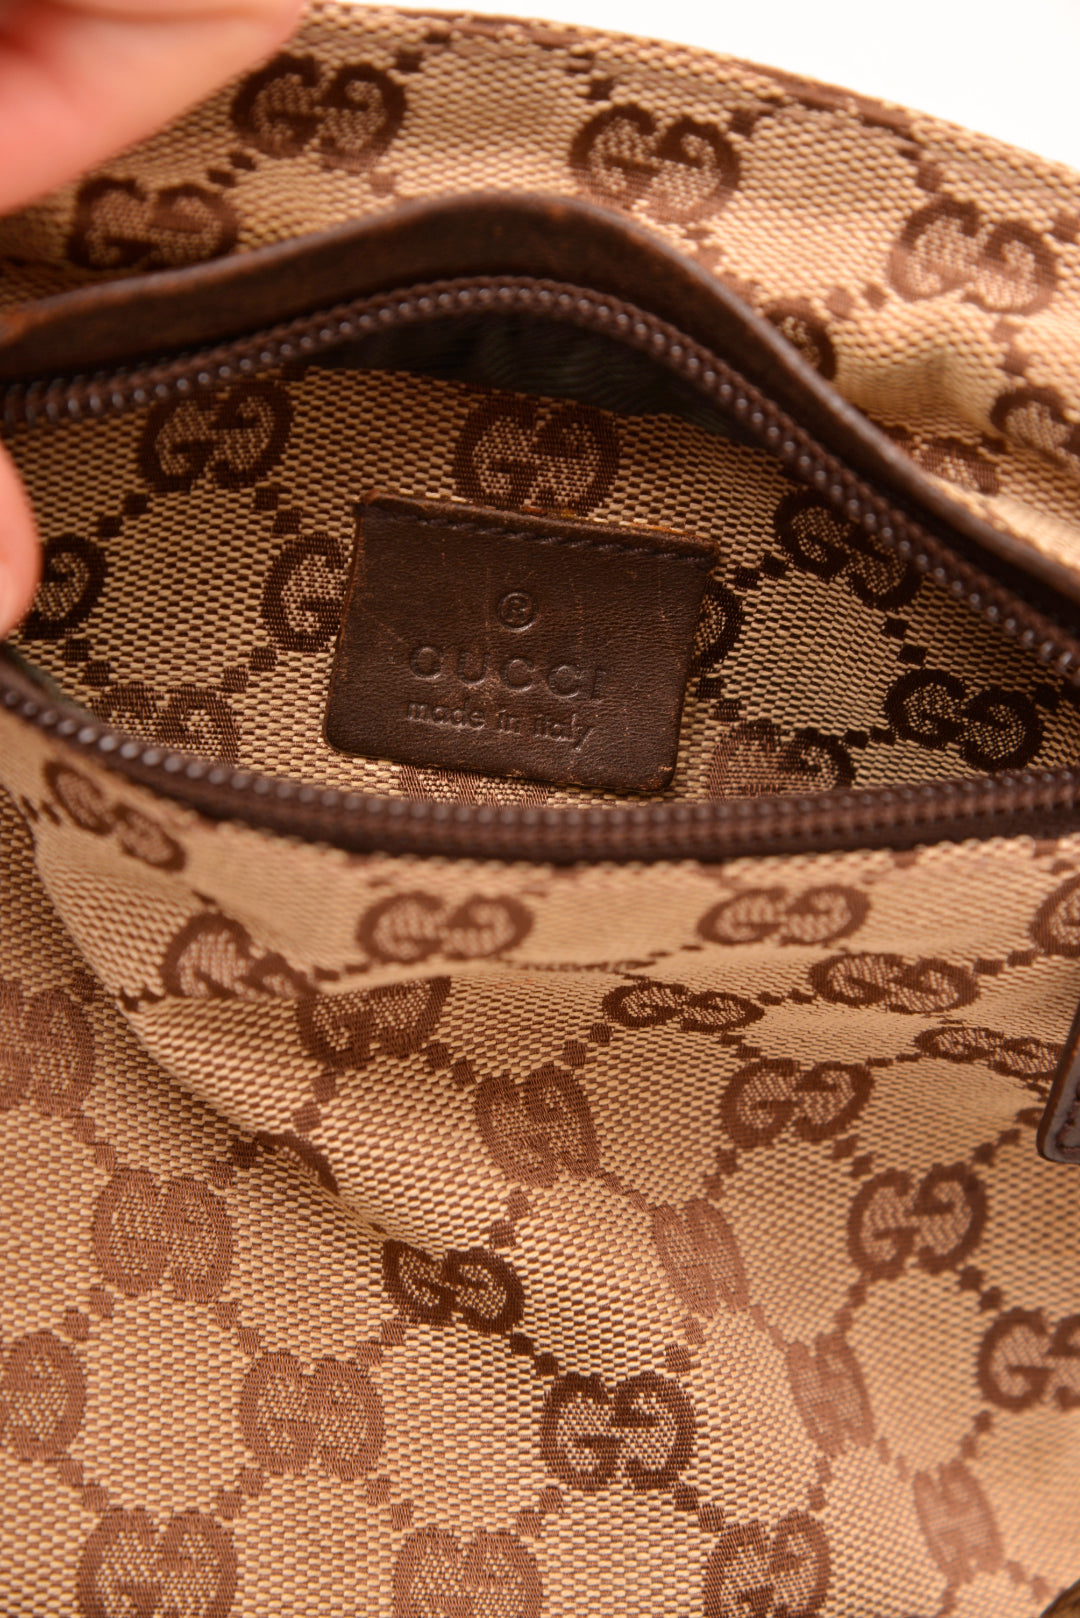 Vintage Gucci Monogram Belt Bag - Mercado32